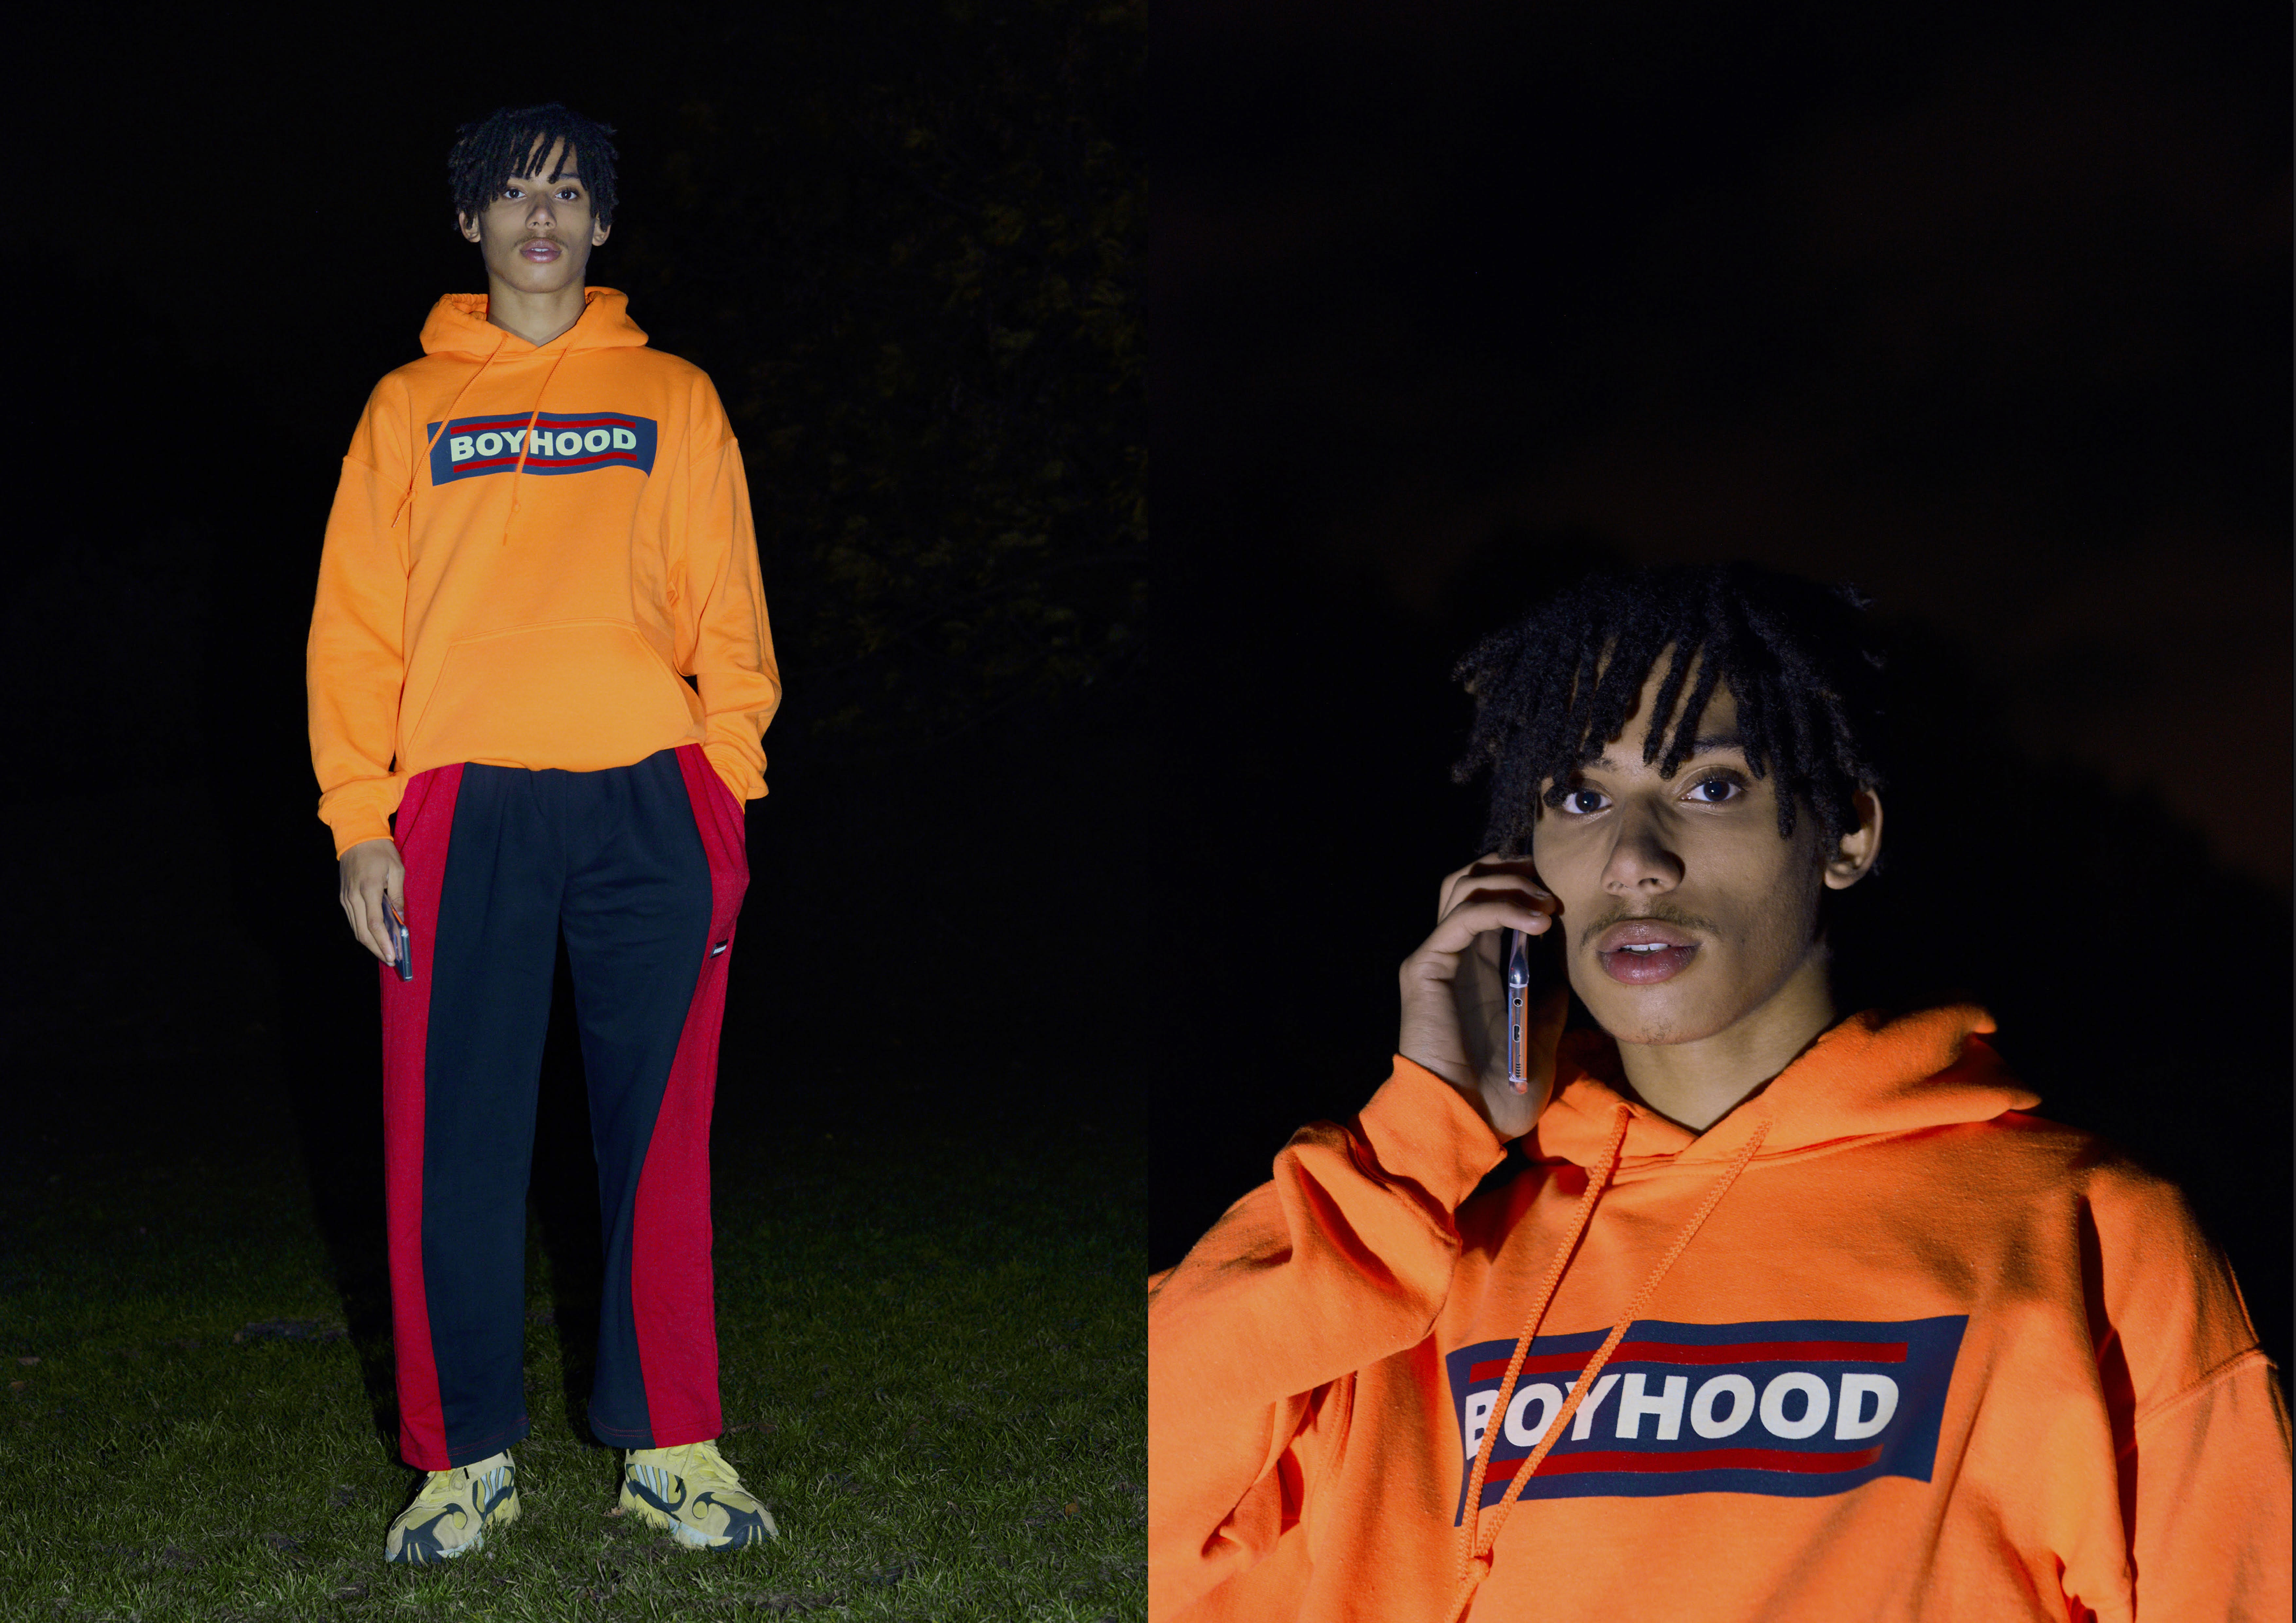 Boyhood's Latest Capsule Goes Vivid, Even in the Dark